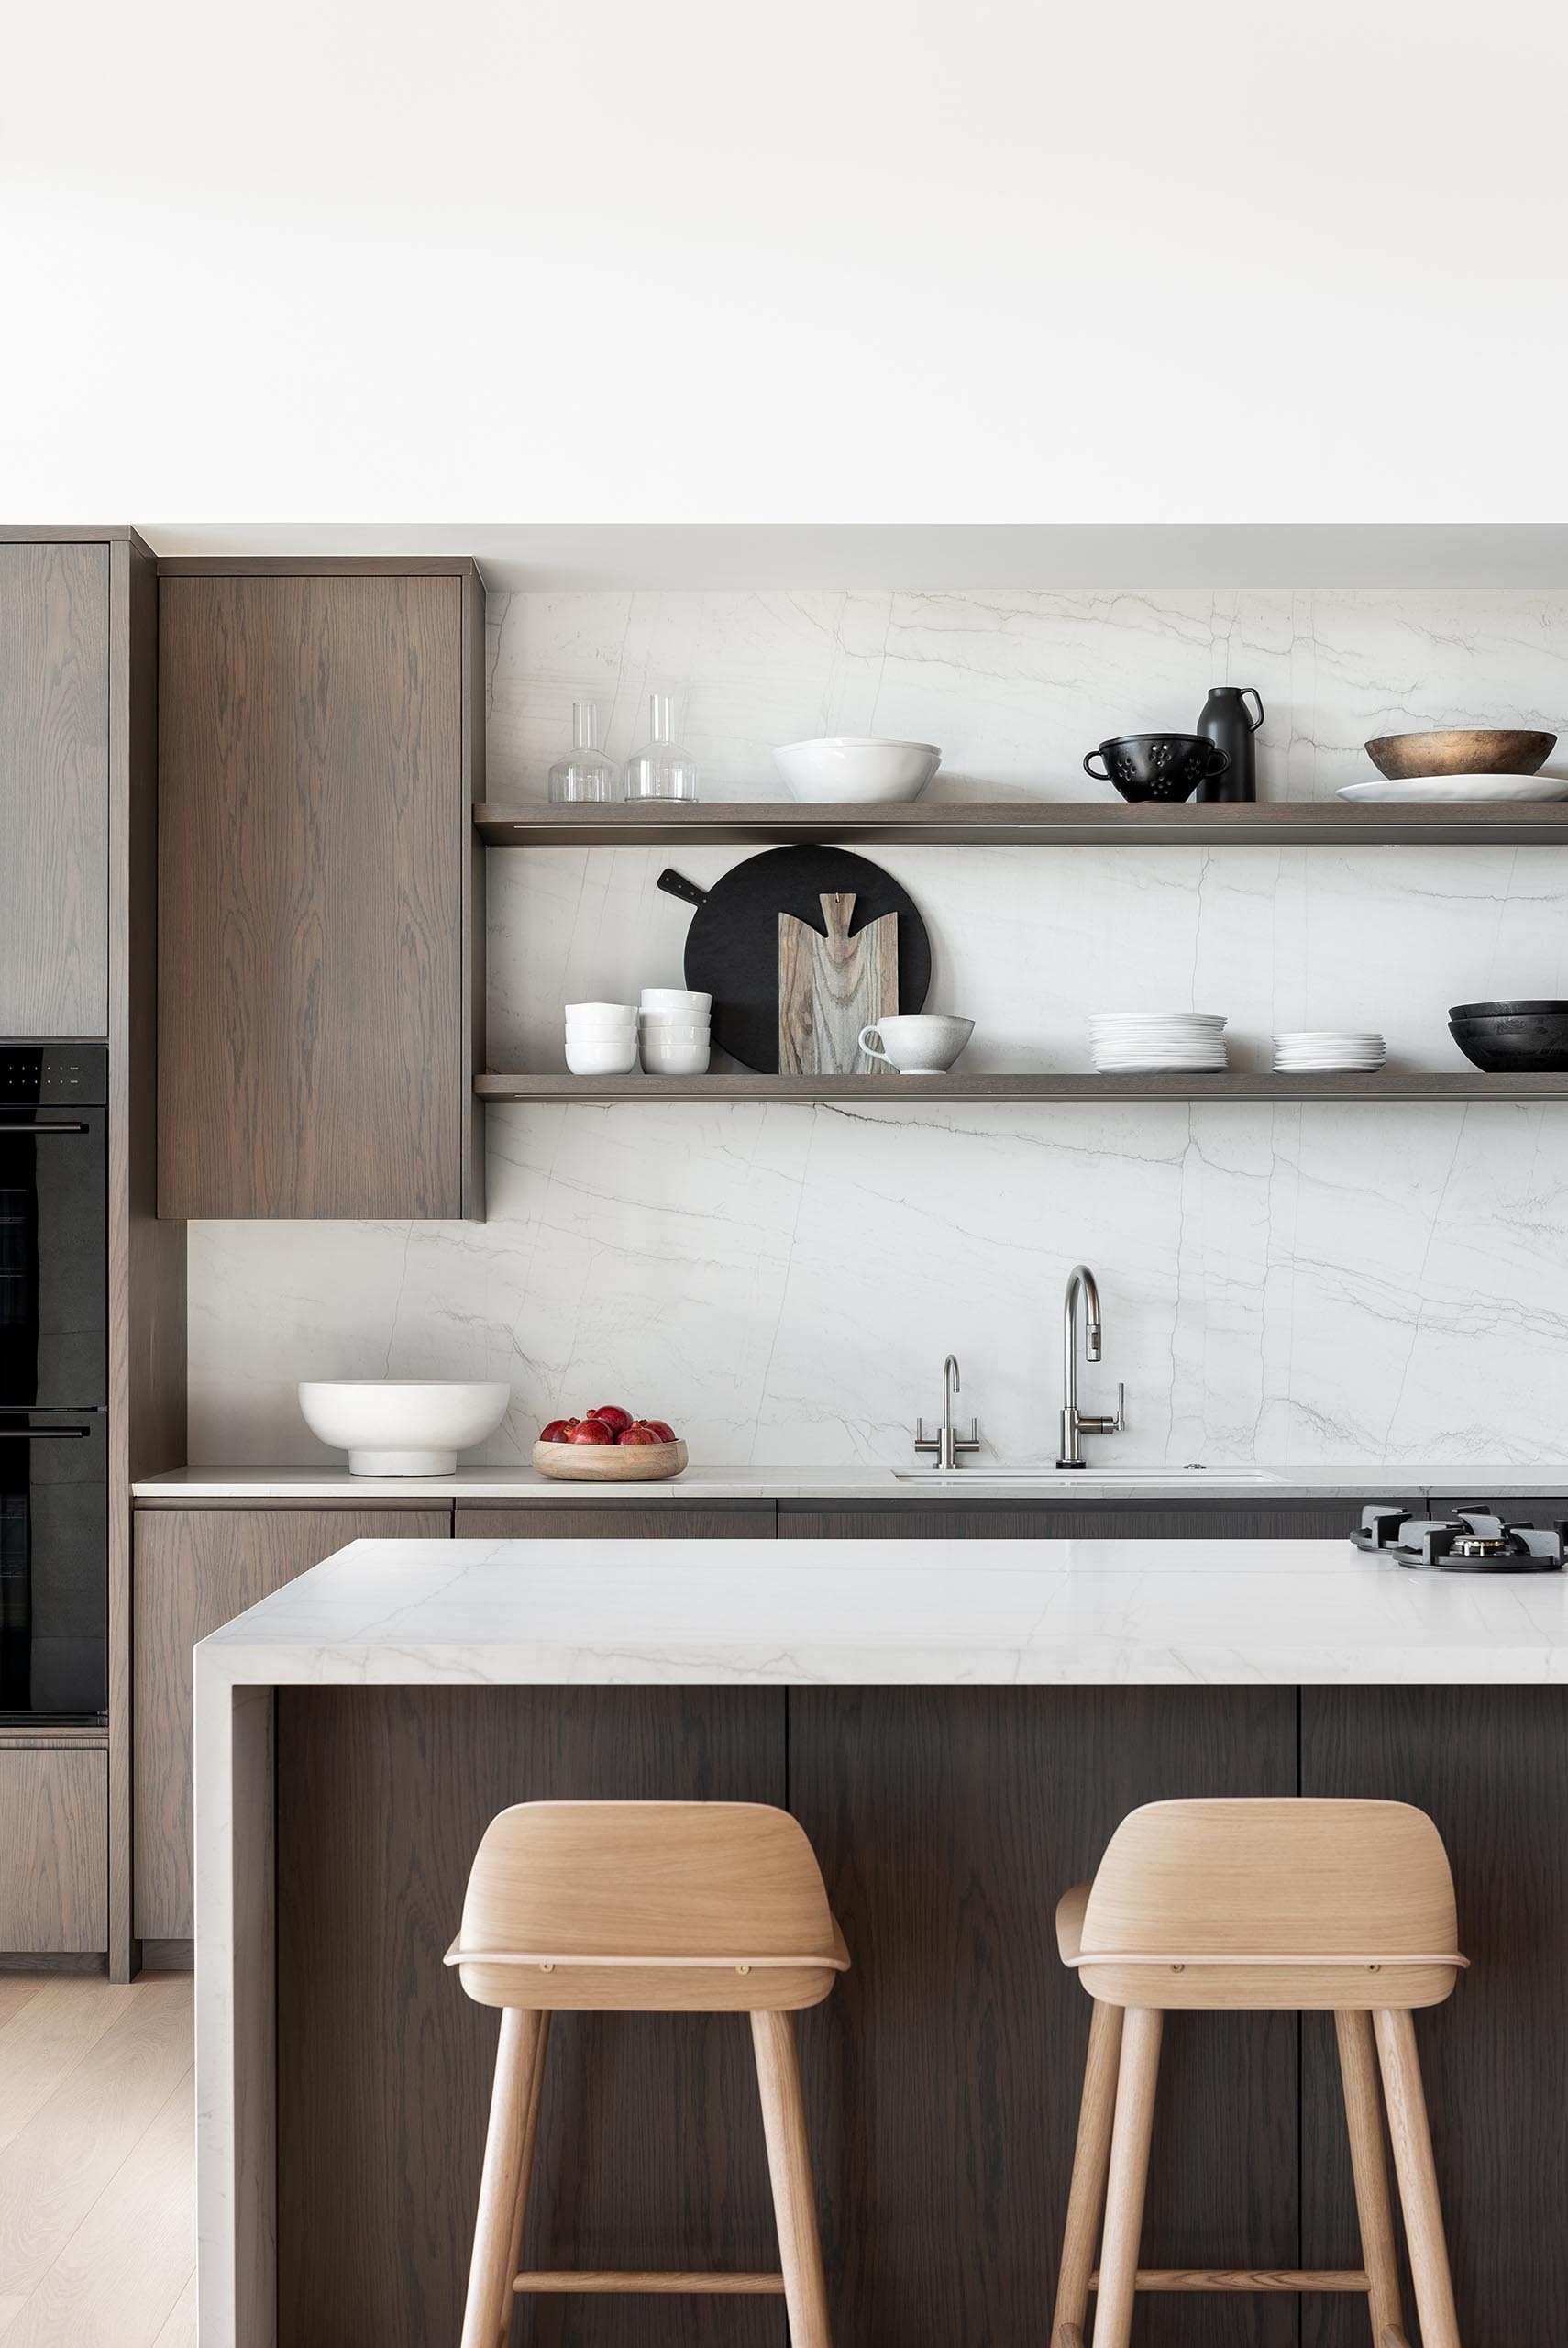 A modern kitchen with wood cabinets, open shelving, and light colored countertops.